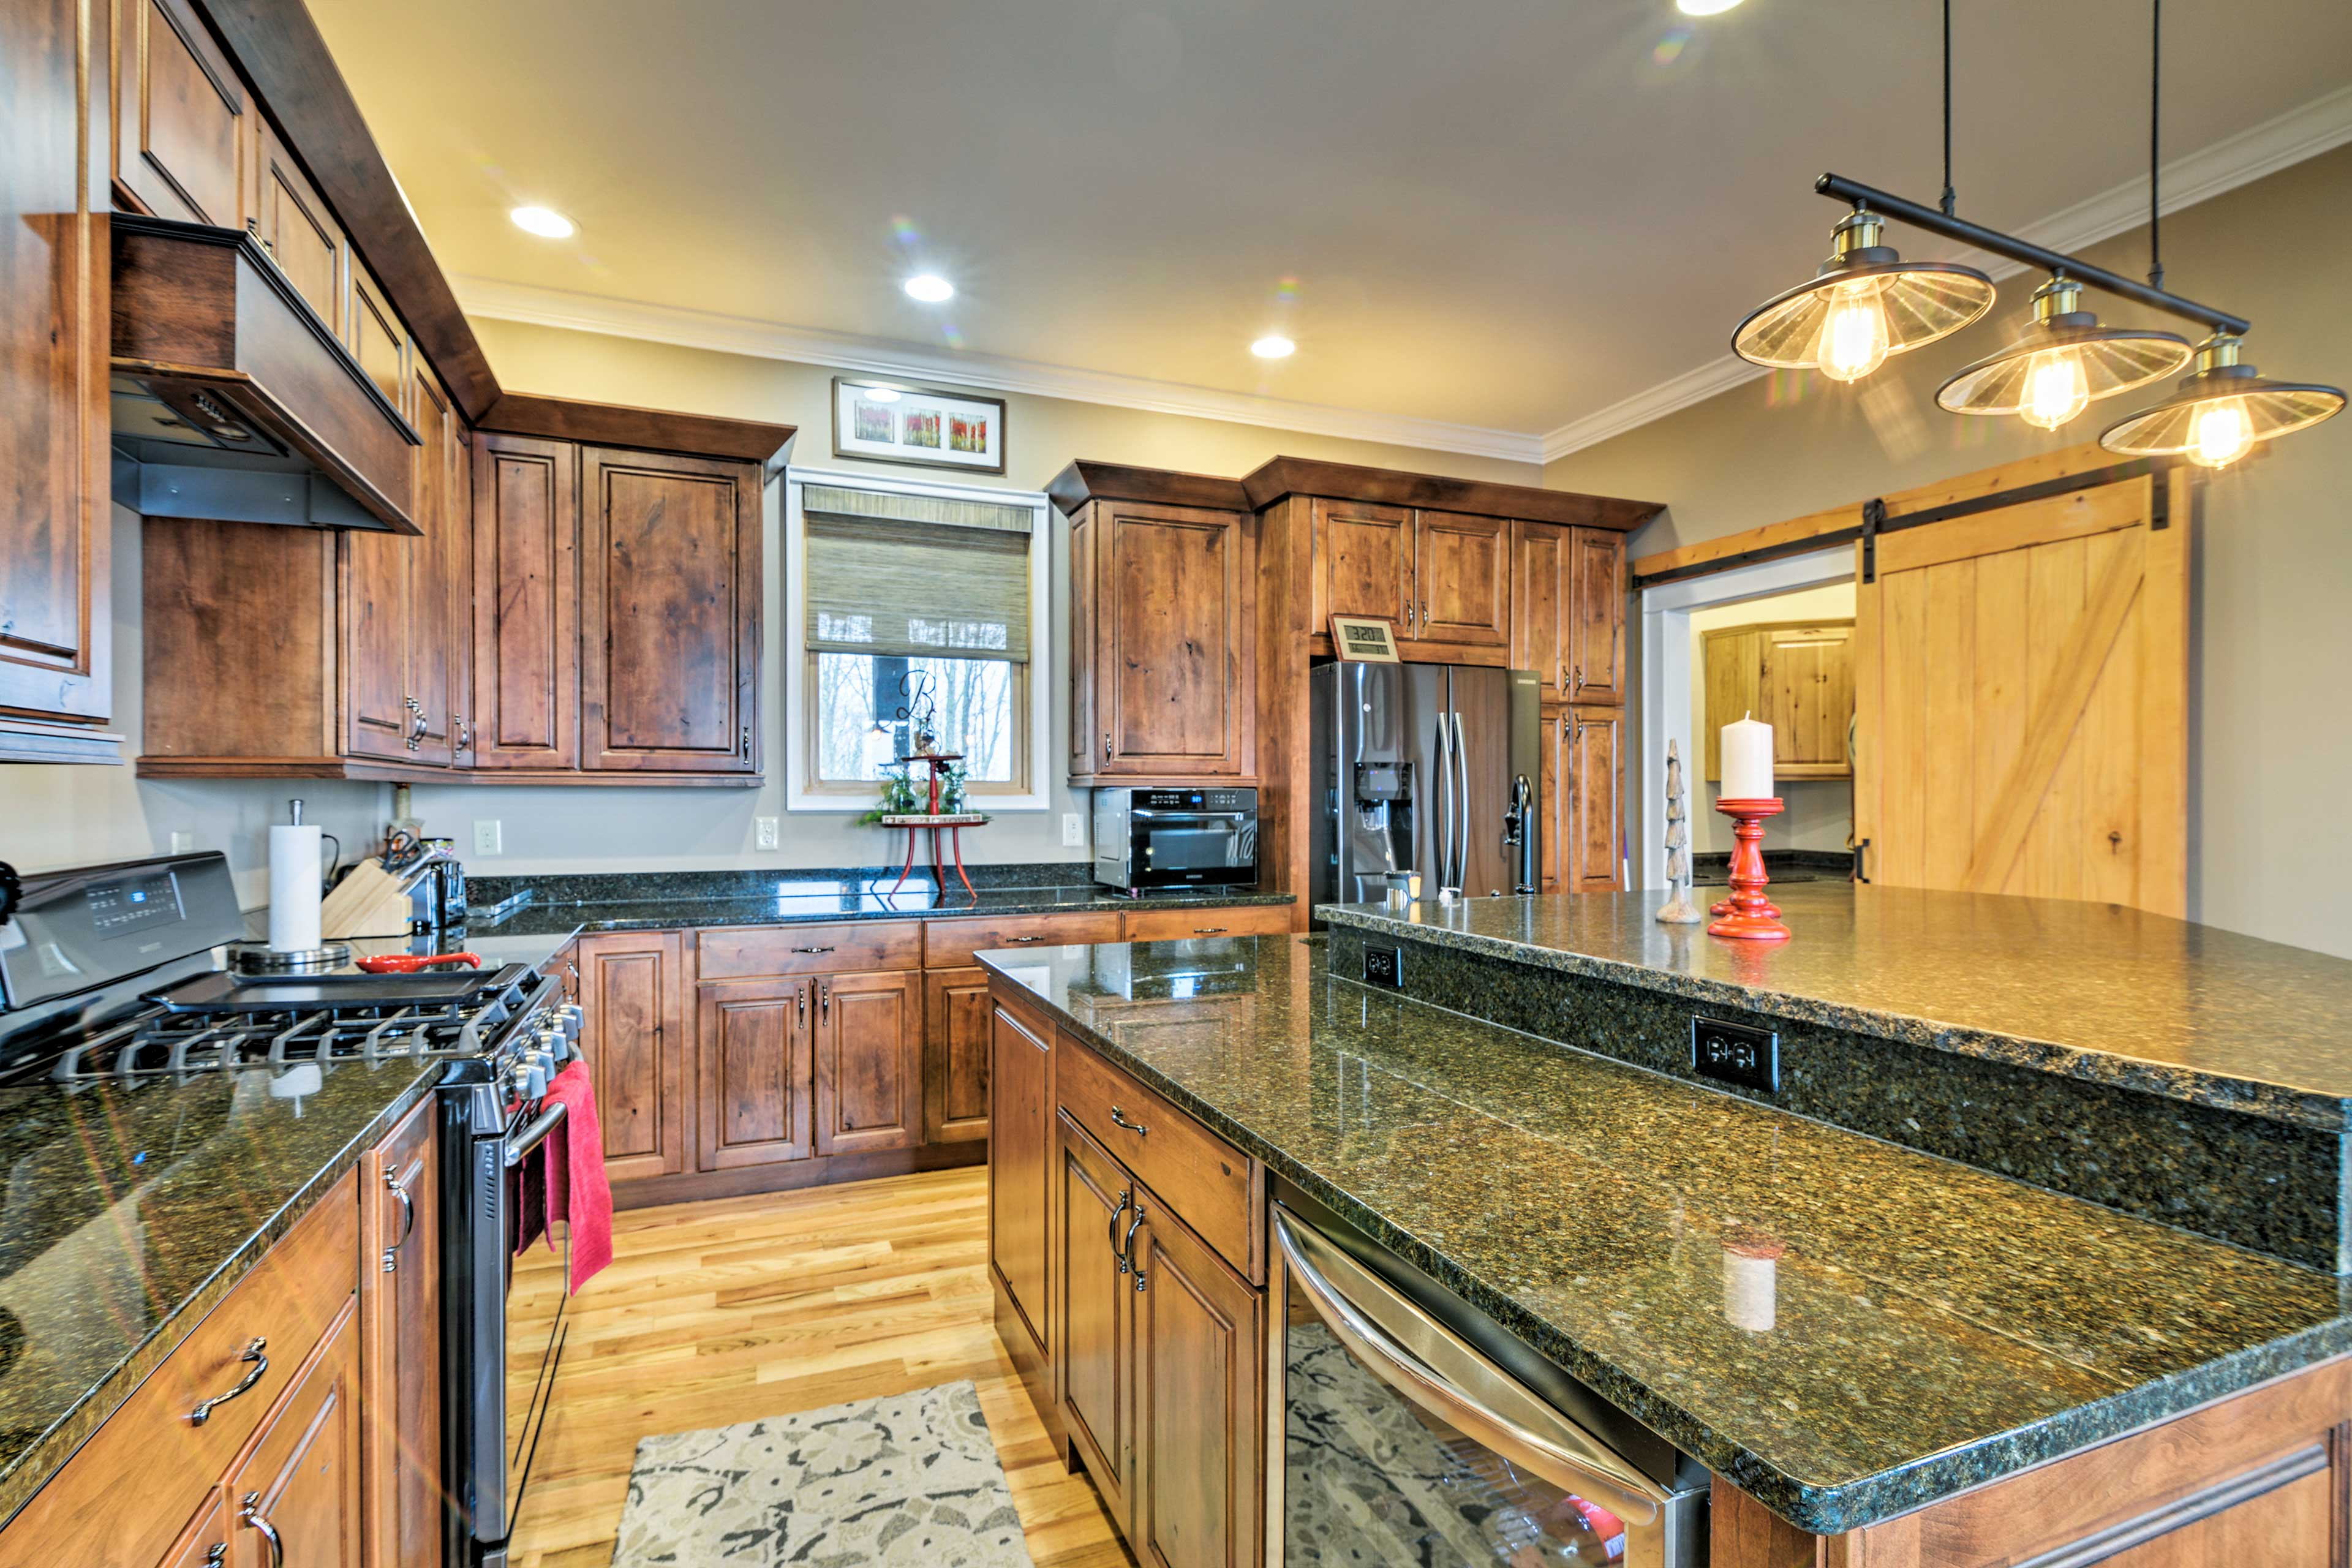 Granite countertops and stainless steel appliances complement the kitchen.